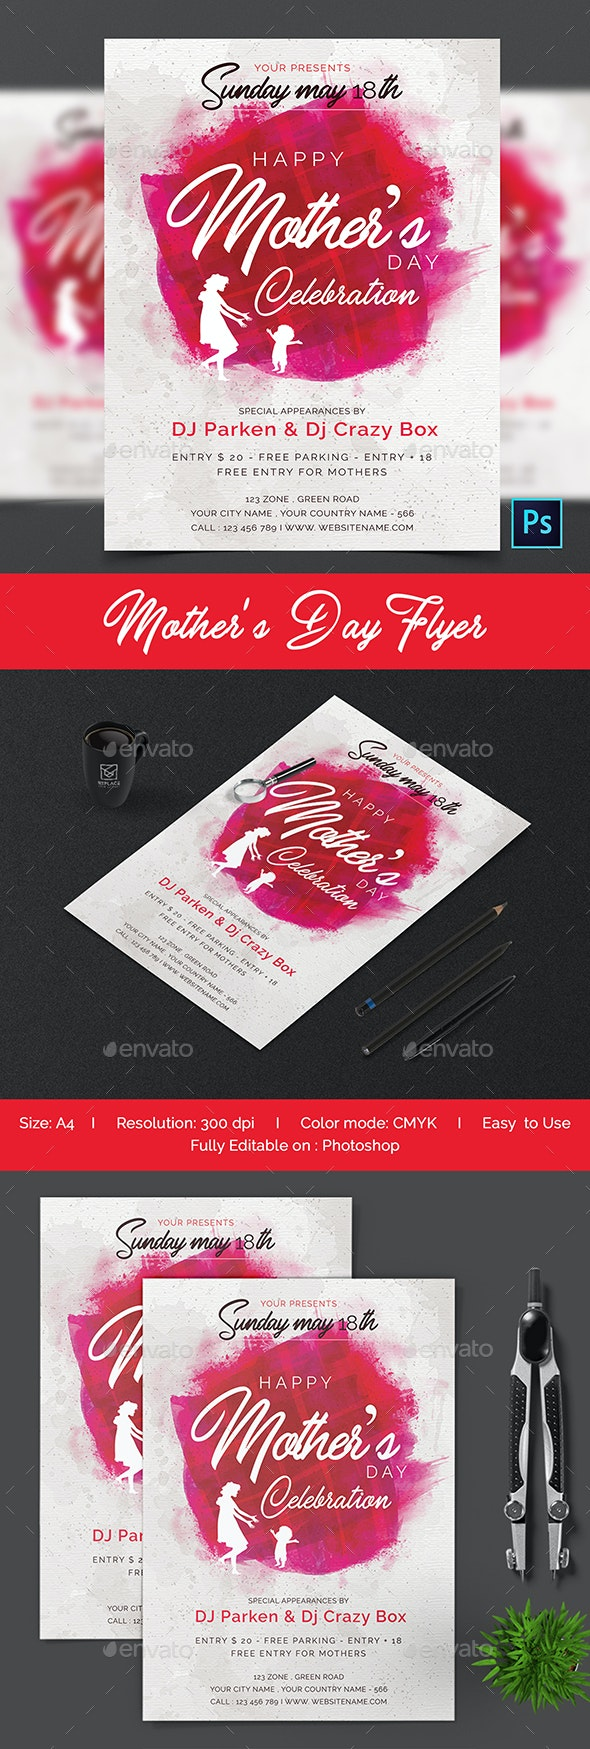 Mothers Day Flyer - Flyers Print Templates